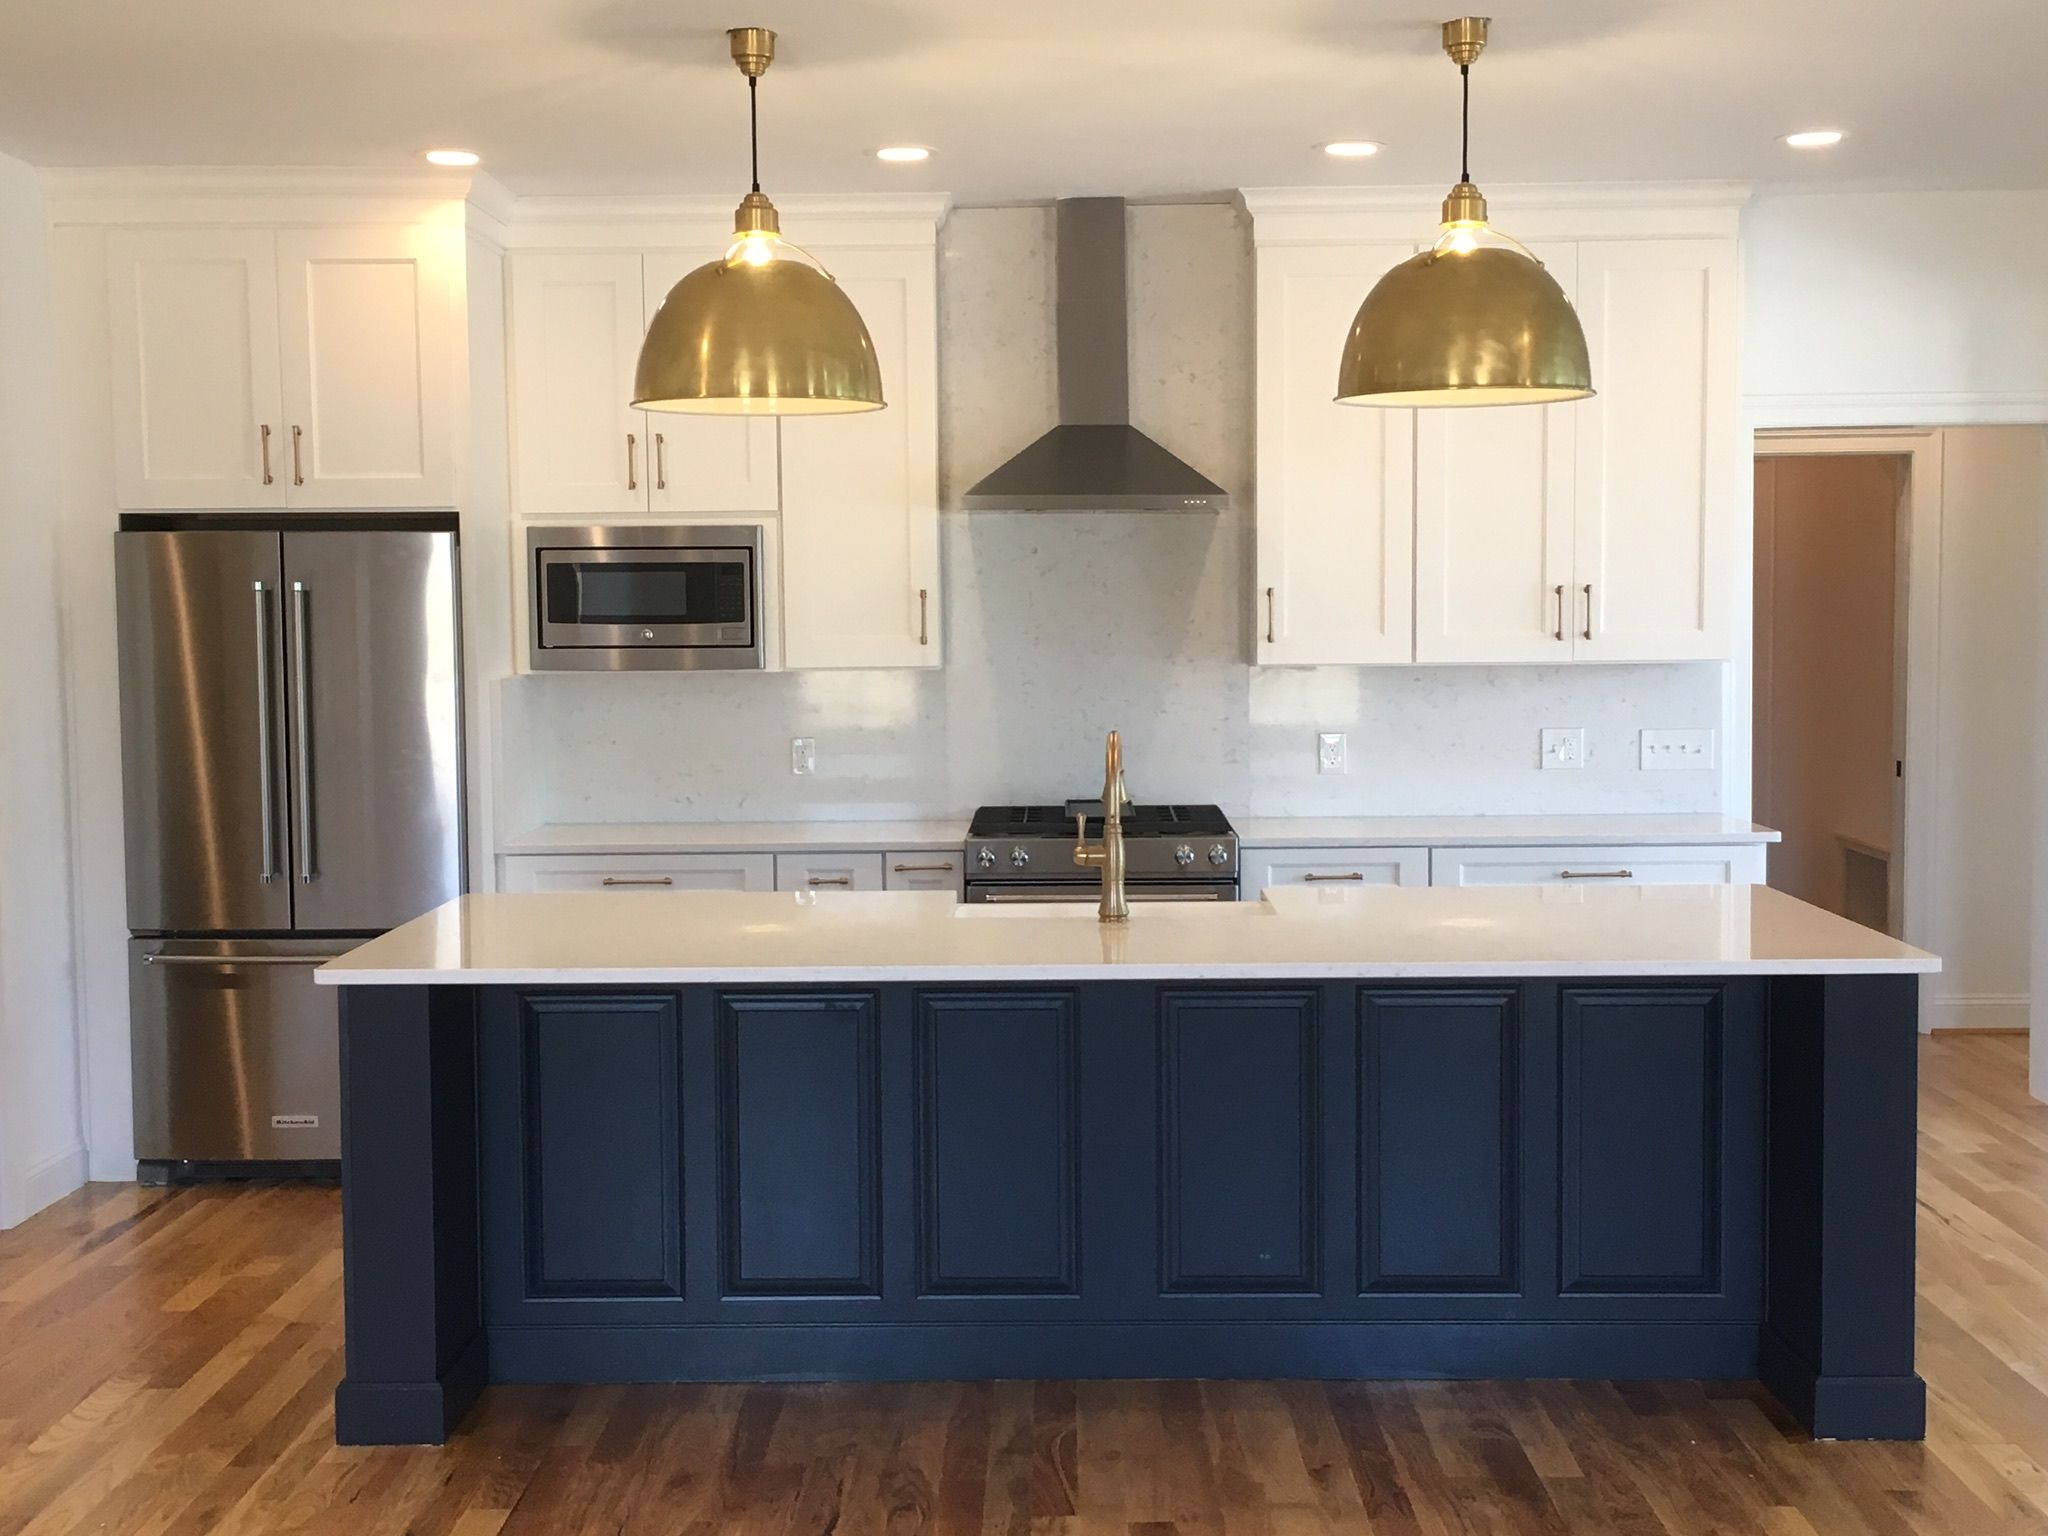 Mixed metals and navy island kitchen by JM Selections ...